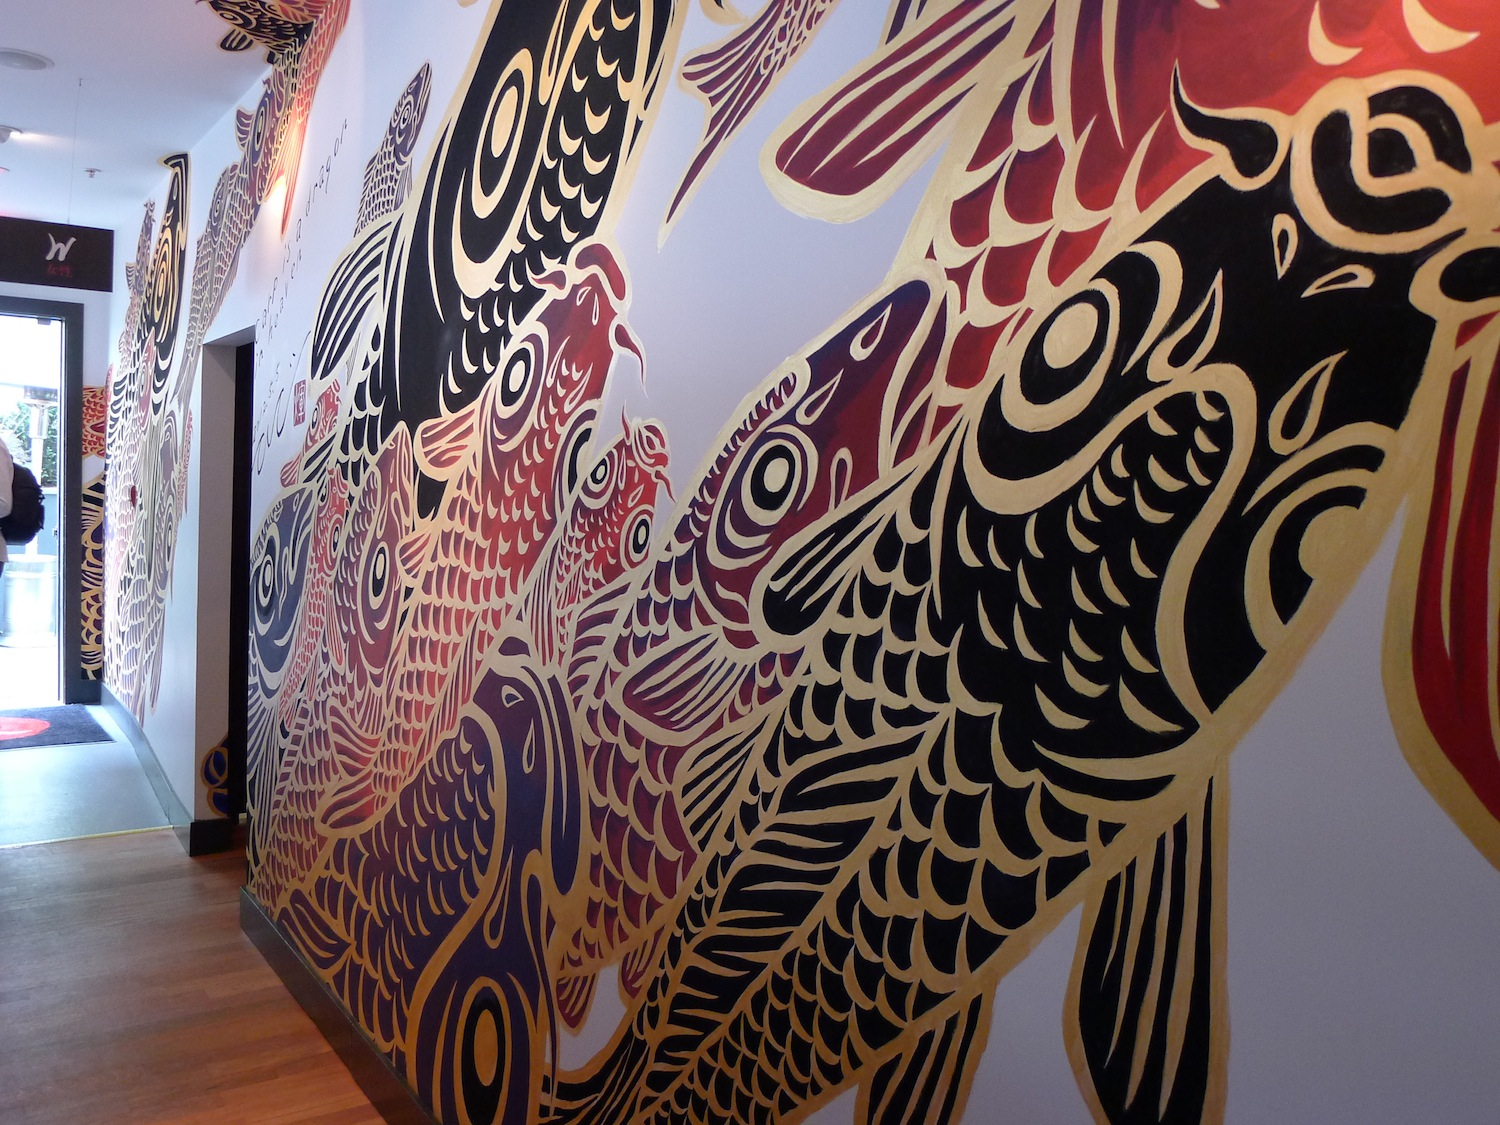 Minami restaurant grand opening vip event pangcouver for Asian wall mural